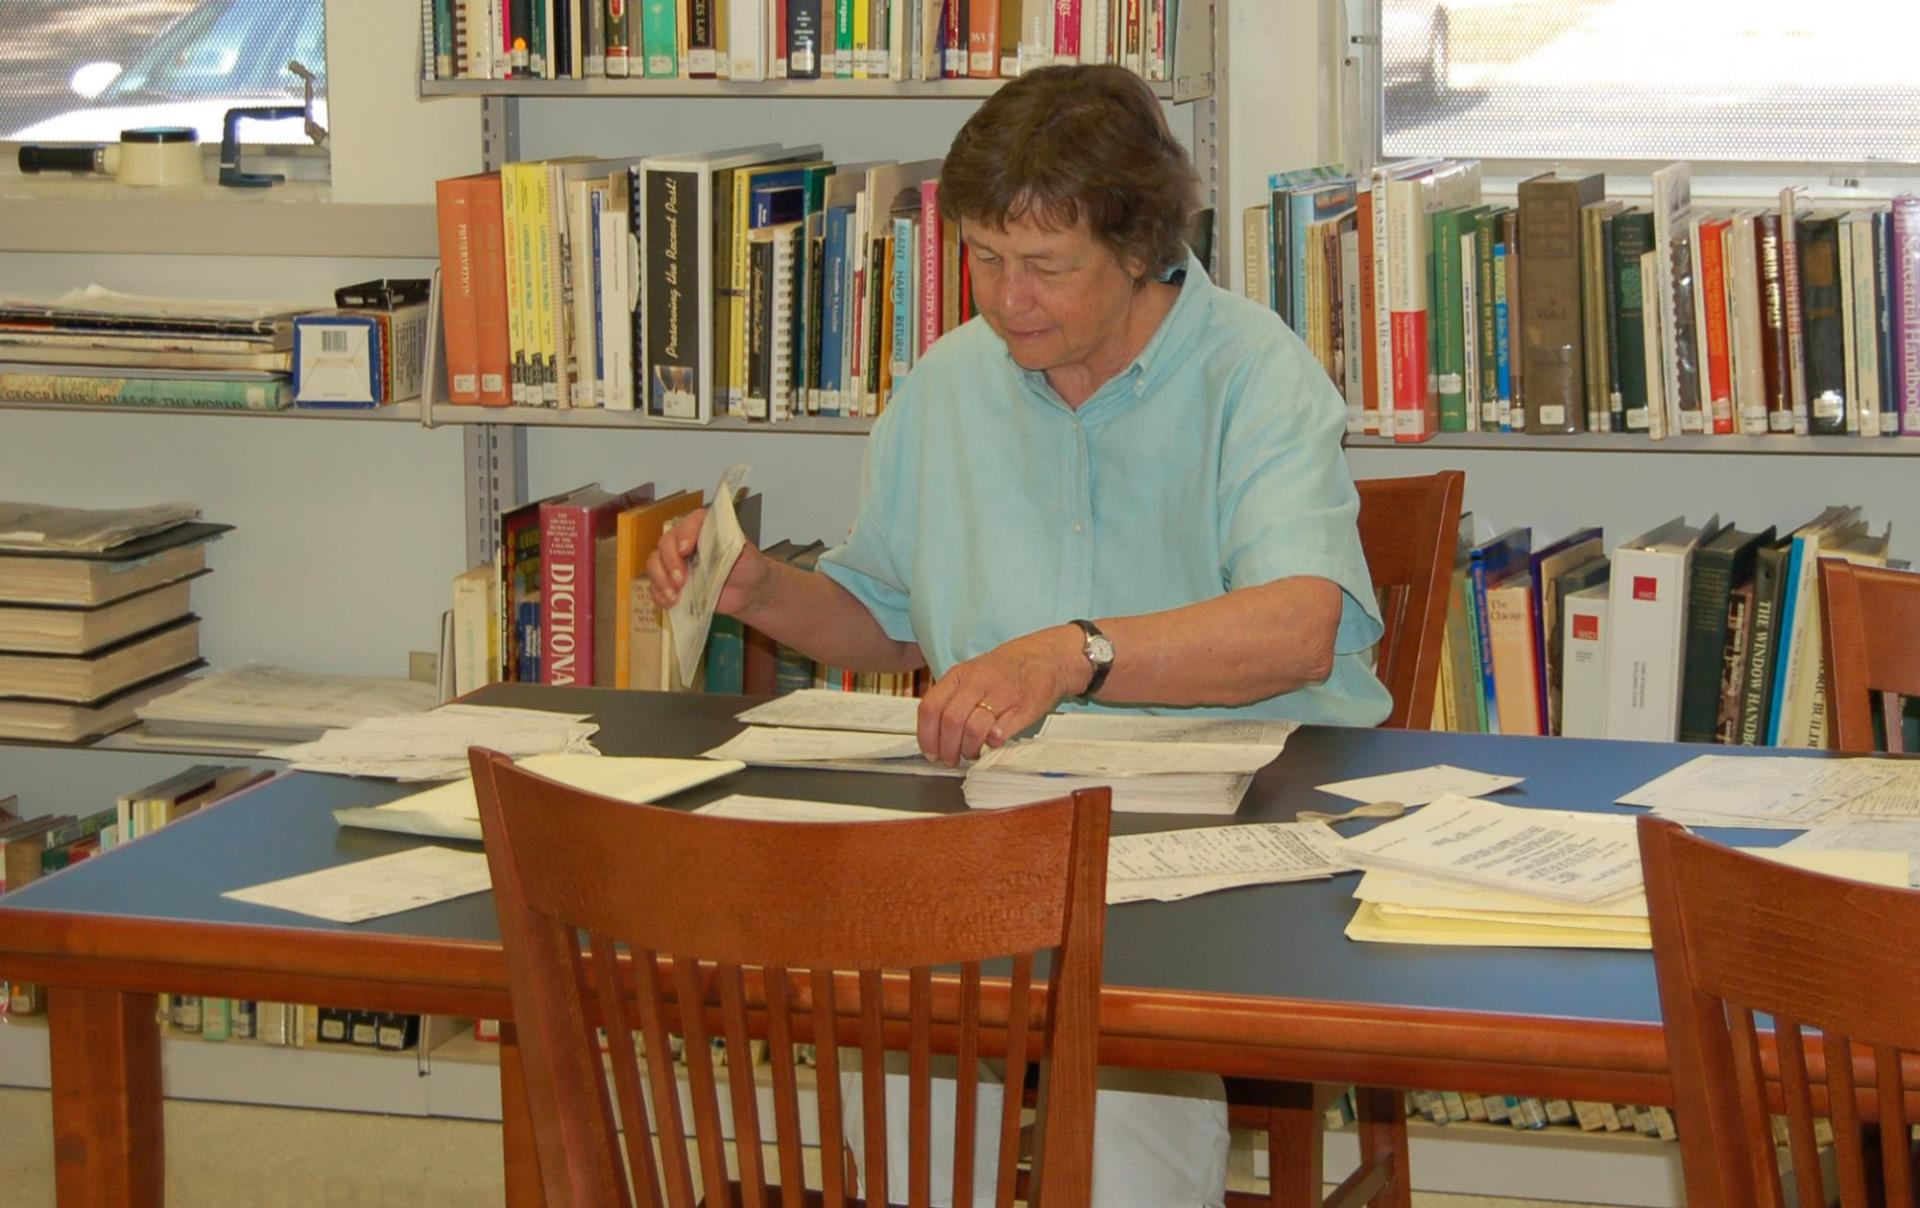 History Resources volunteer sorting research materials